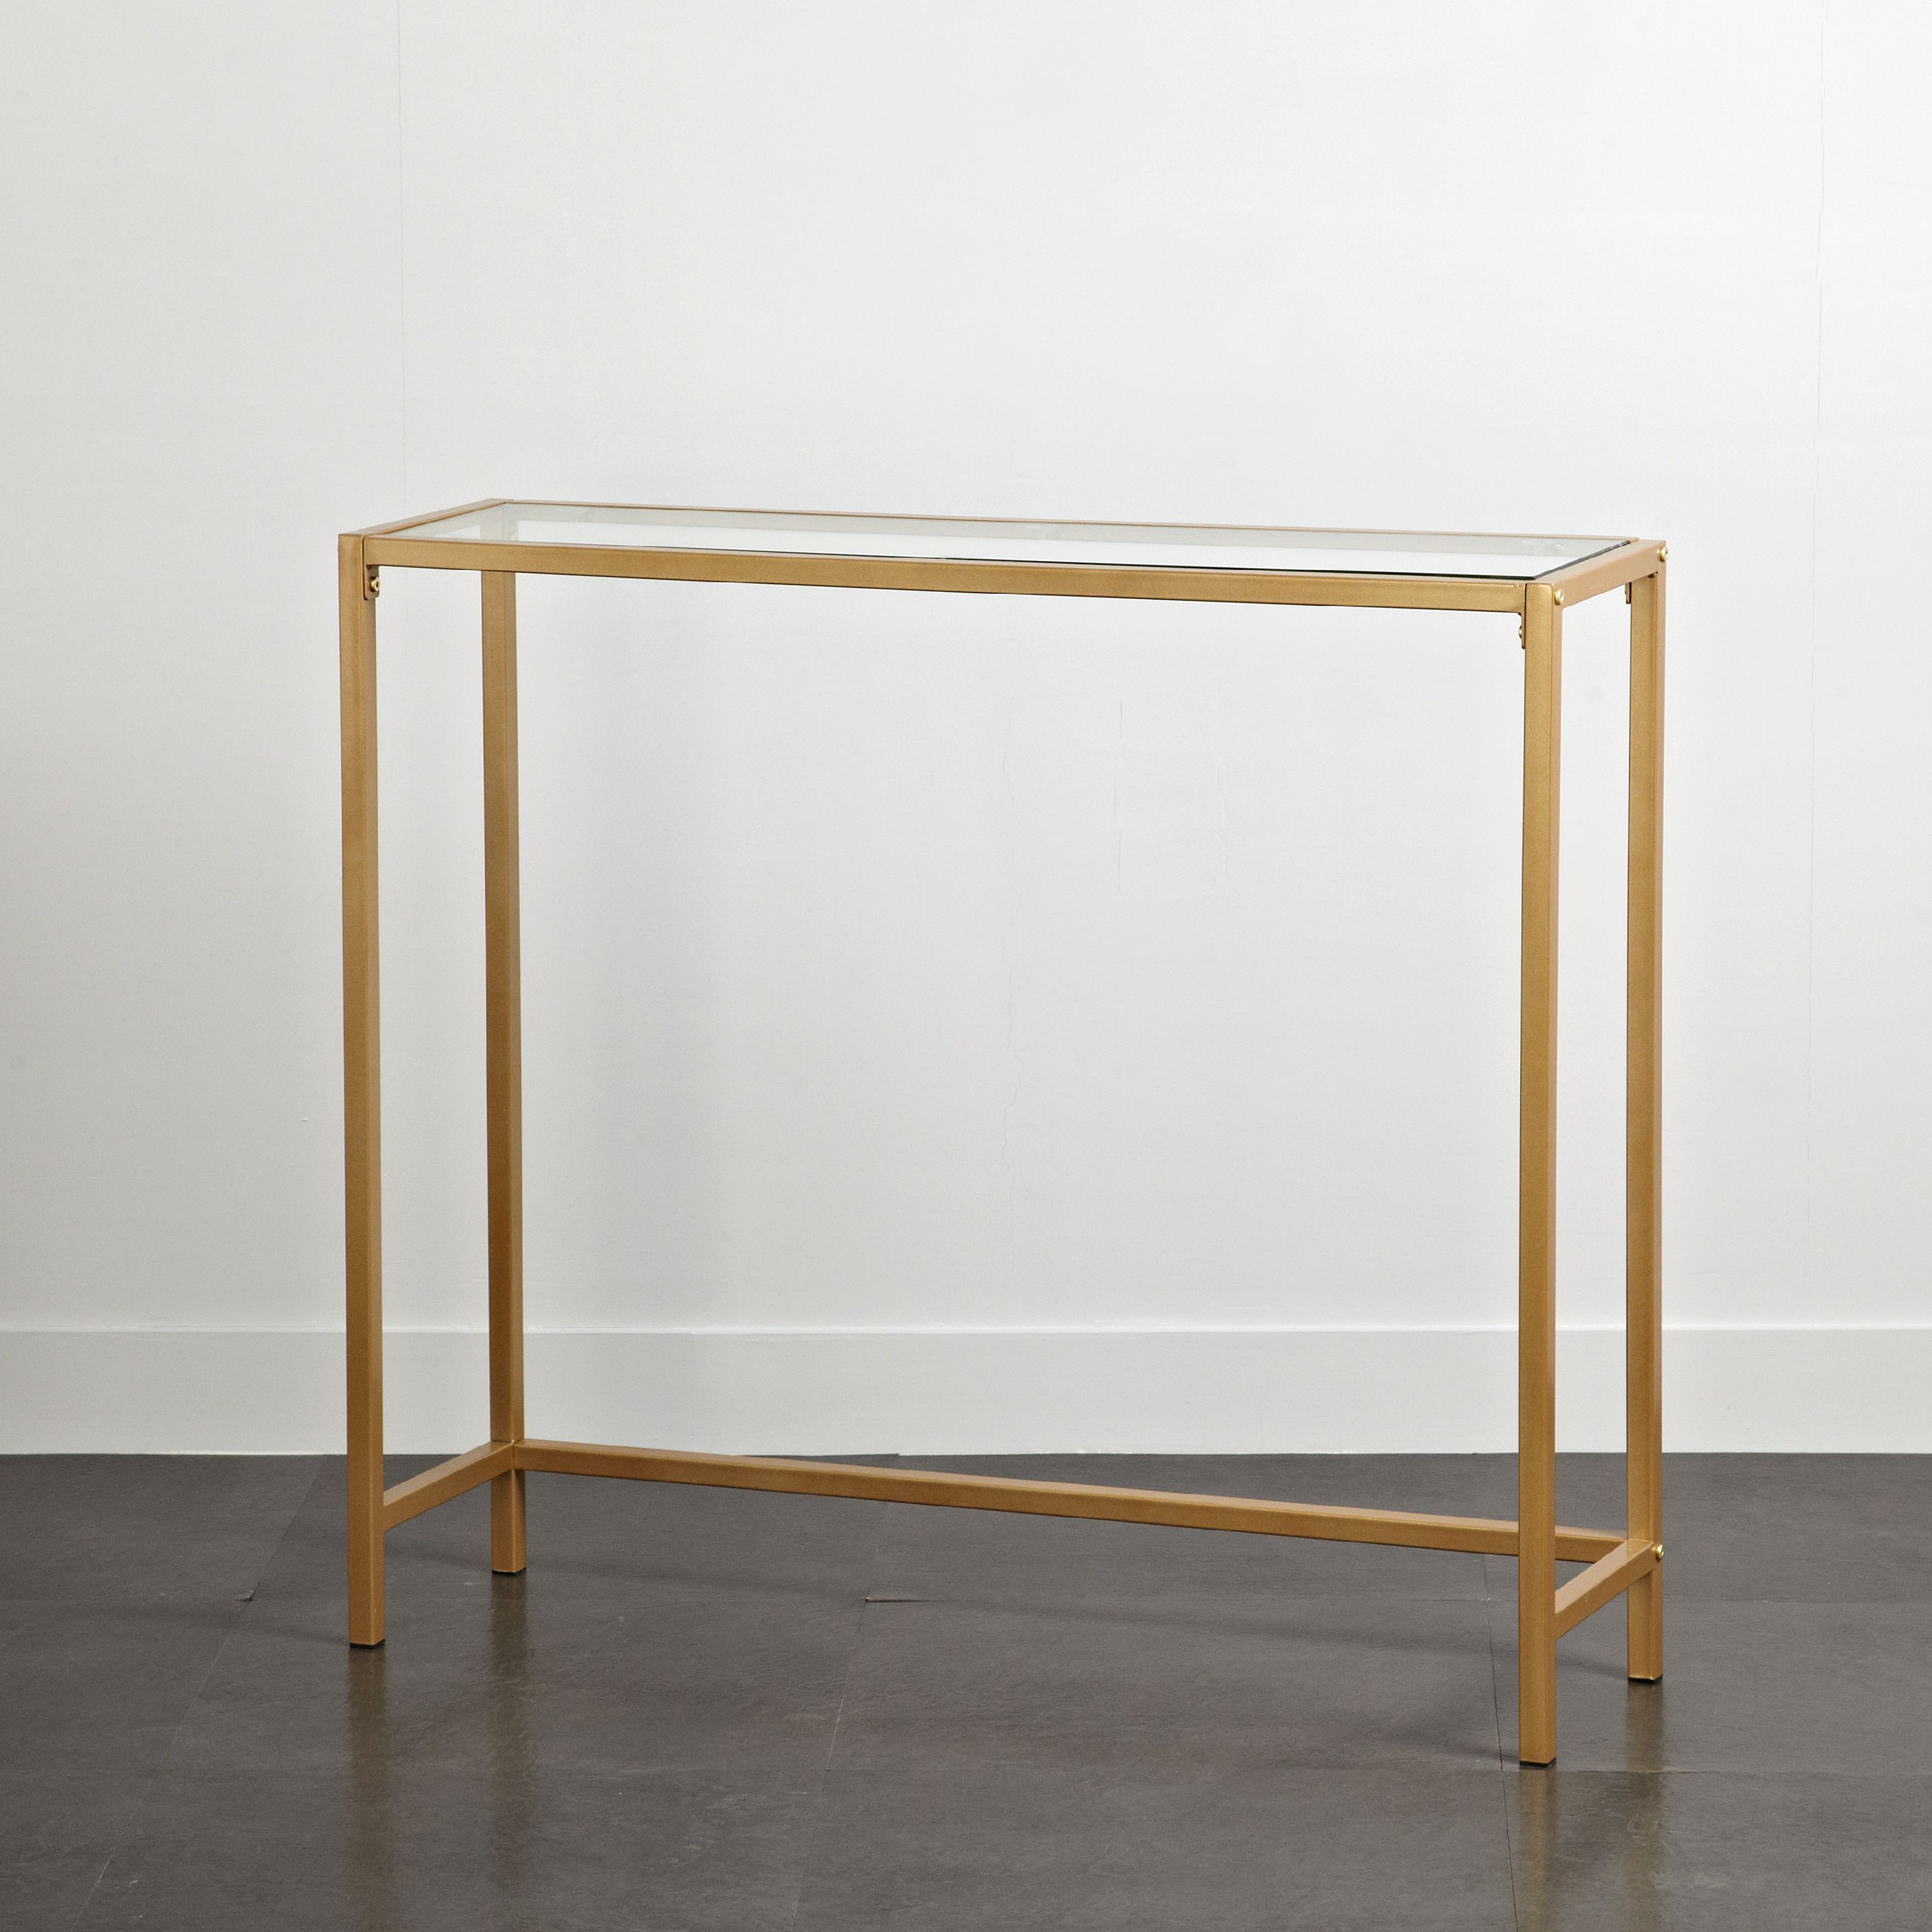 mainstays tempered glass and metal console table collection gold image 3 of 4